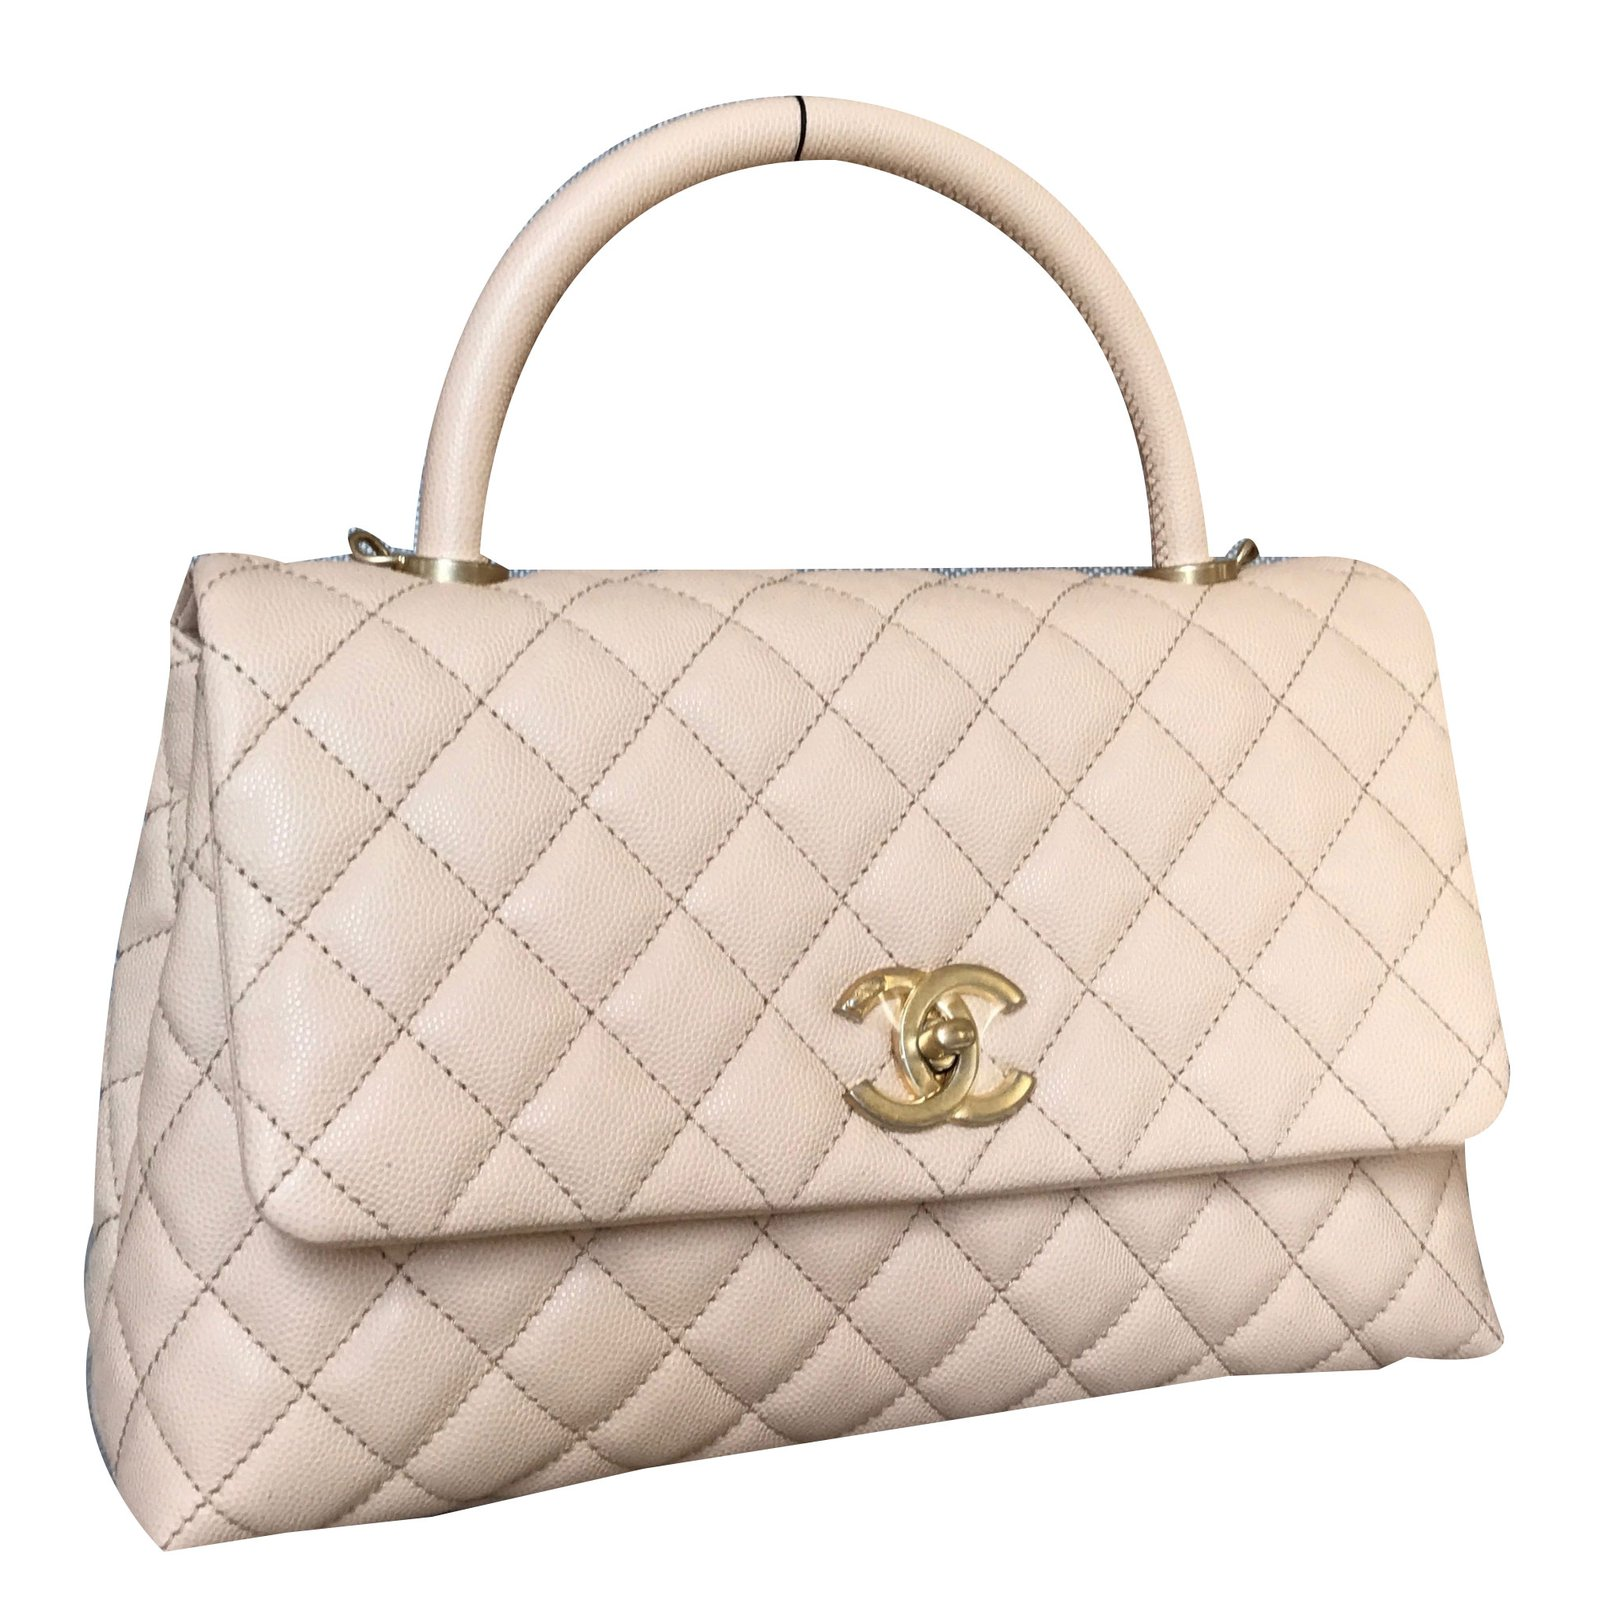 Chanel coco handbags photo photos